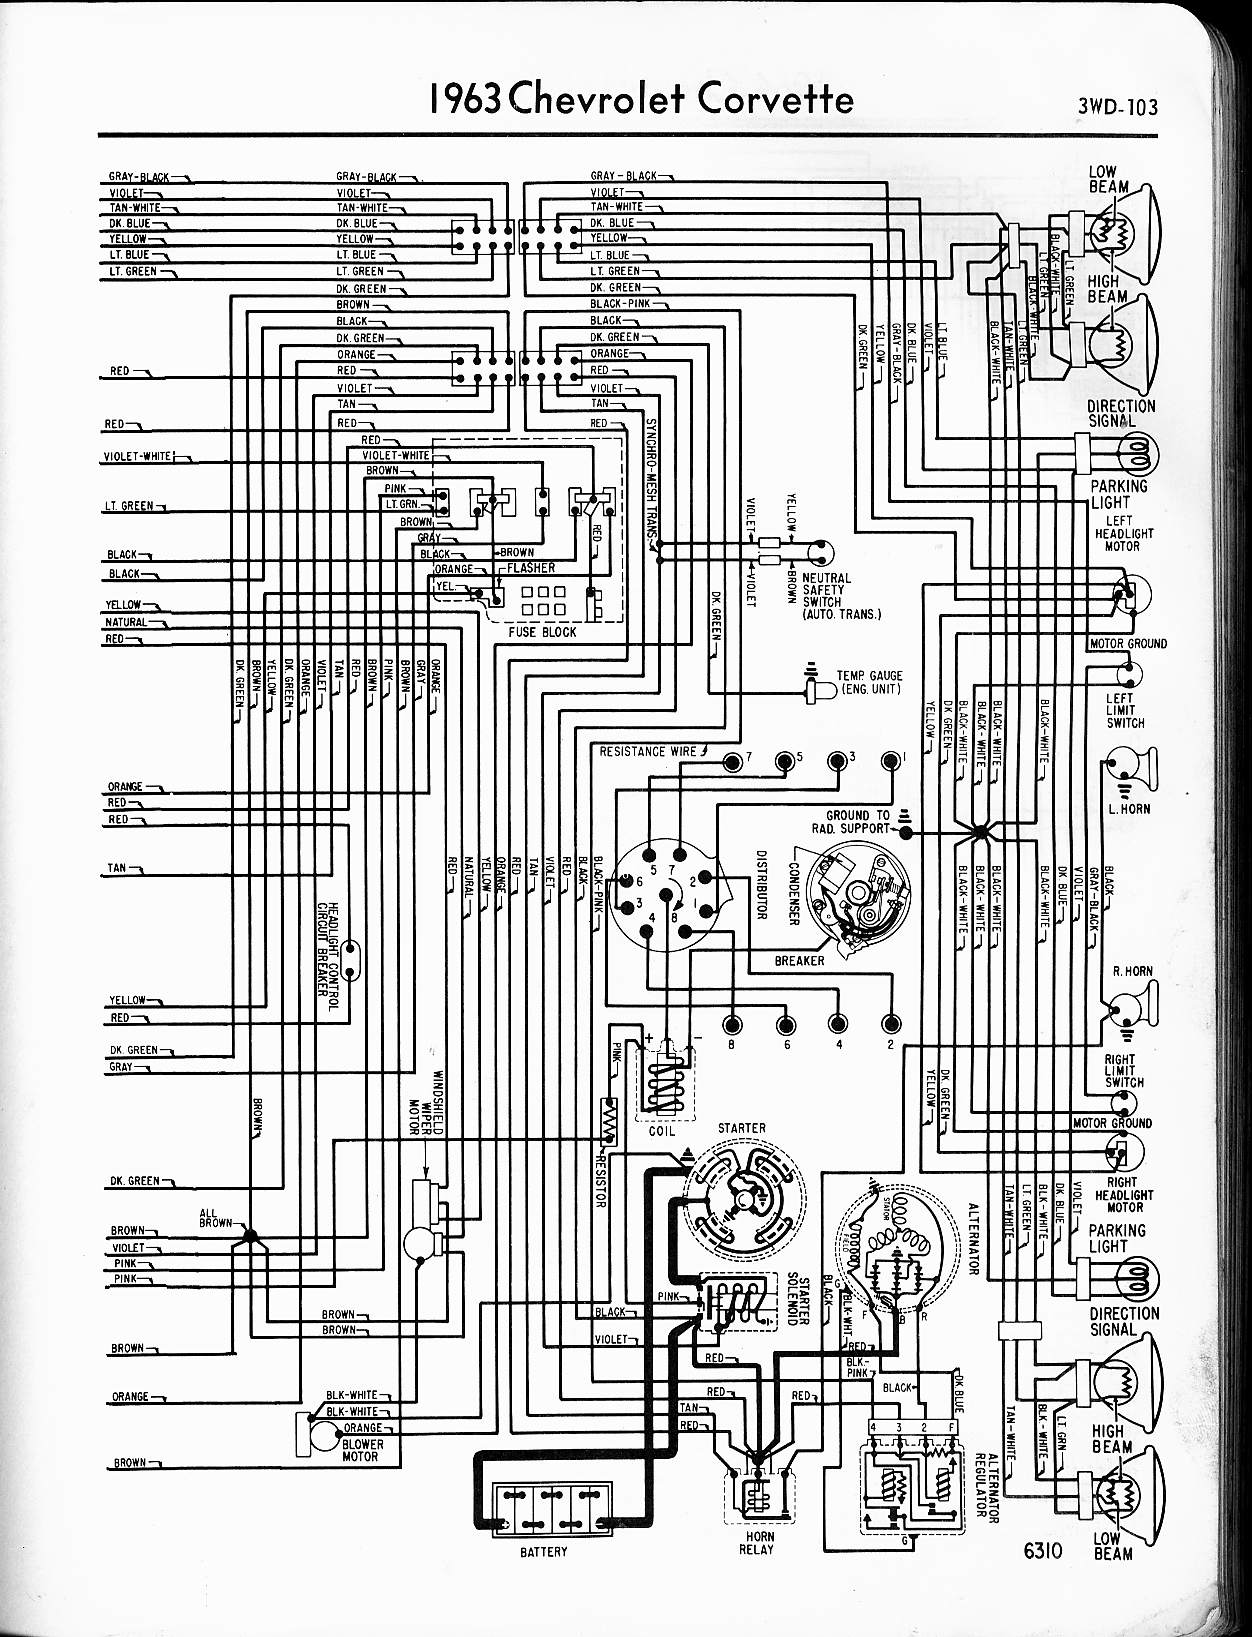 1968 Corvette Horn Wiring Diagram Worksheet And Camaro Radio Chevy C10 Detailed Schematics Rh Jvpacks Com